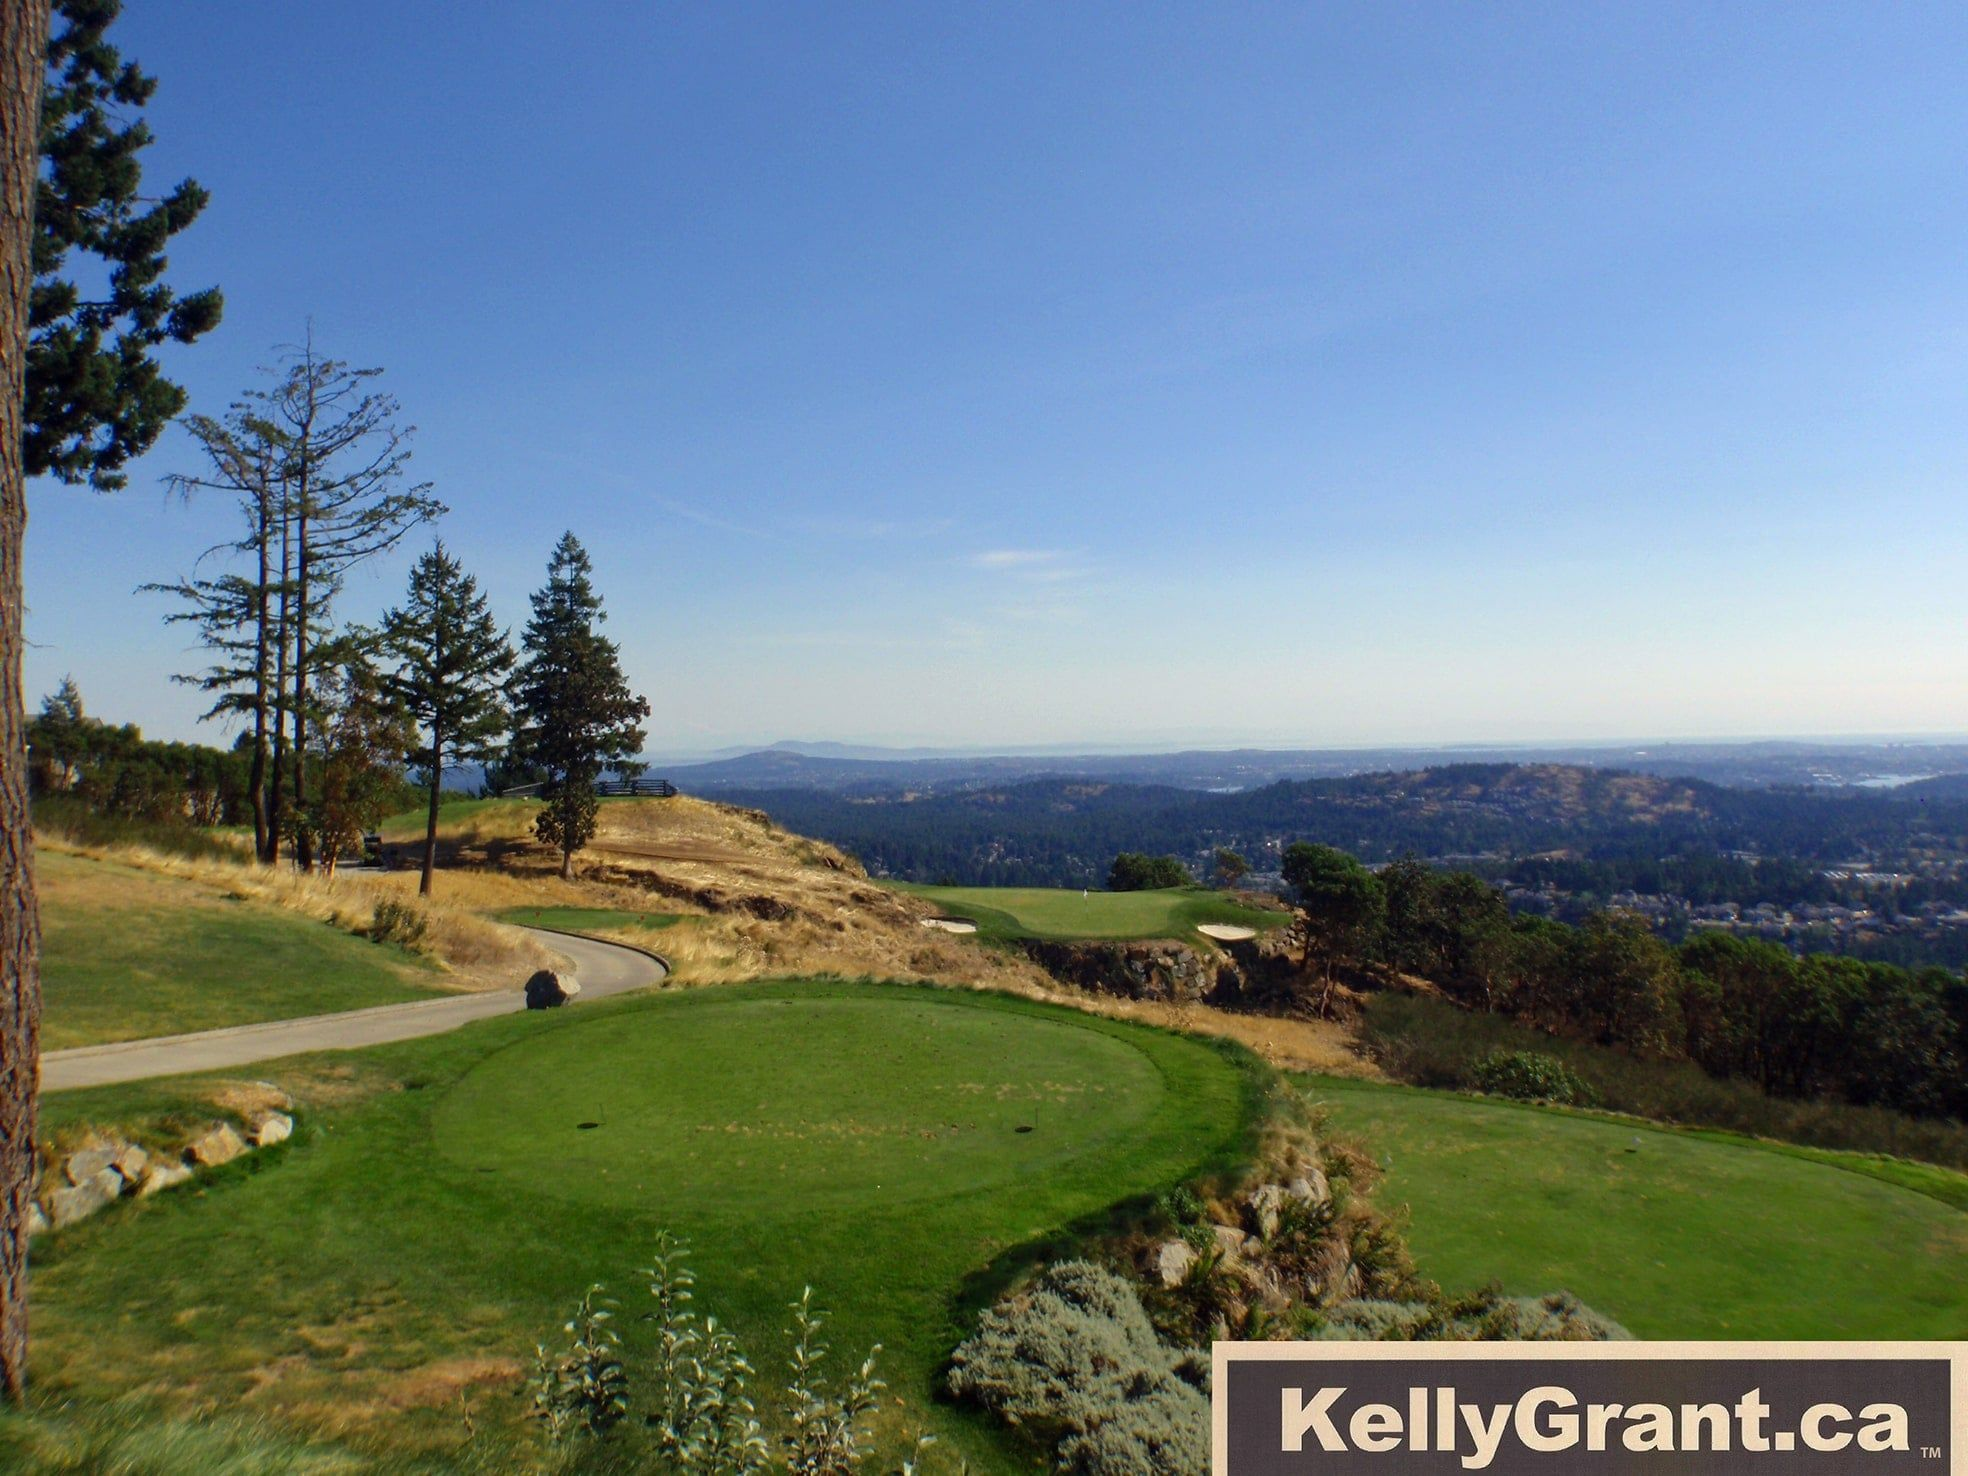 Kelly-Grant-BC golf club image